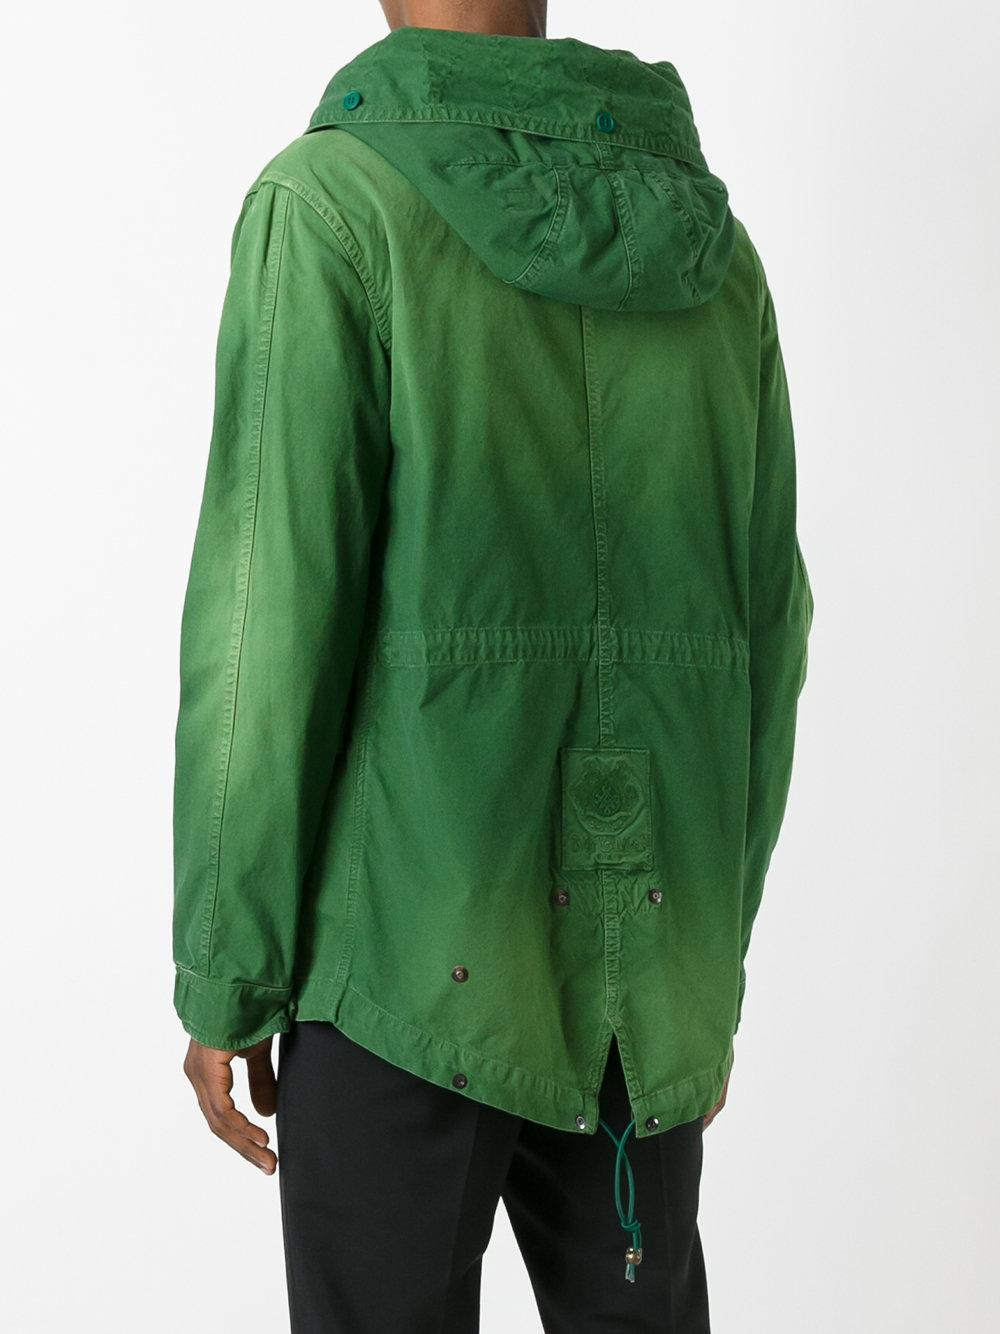 Mr Amp Mrs Italy Multi Patch Hooded Jacket In Green For Men